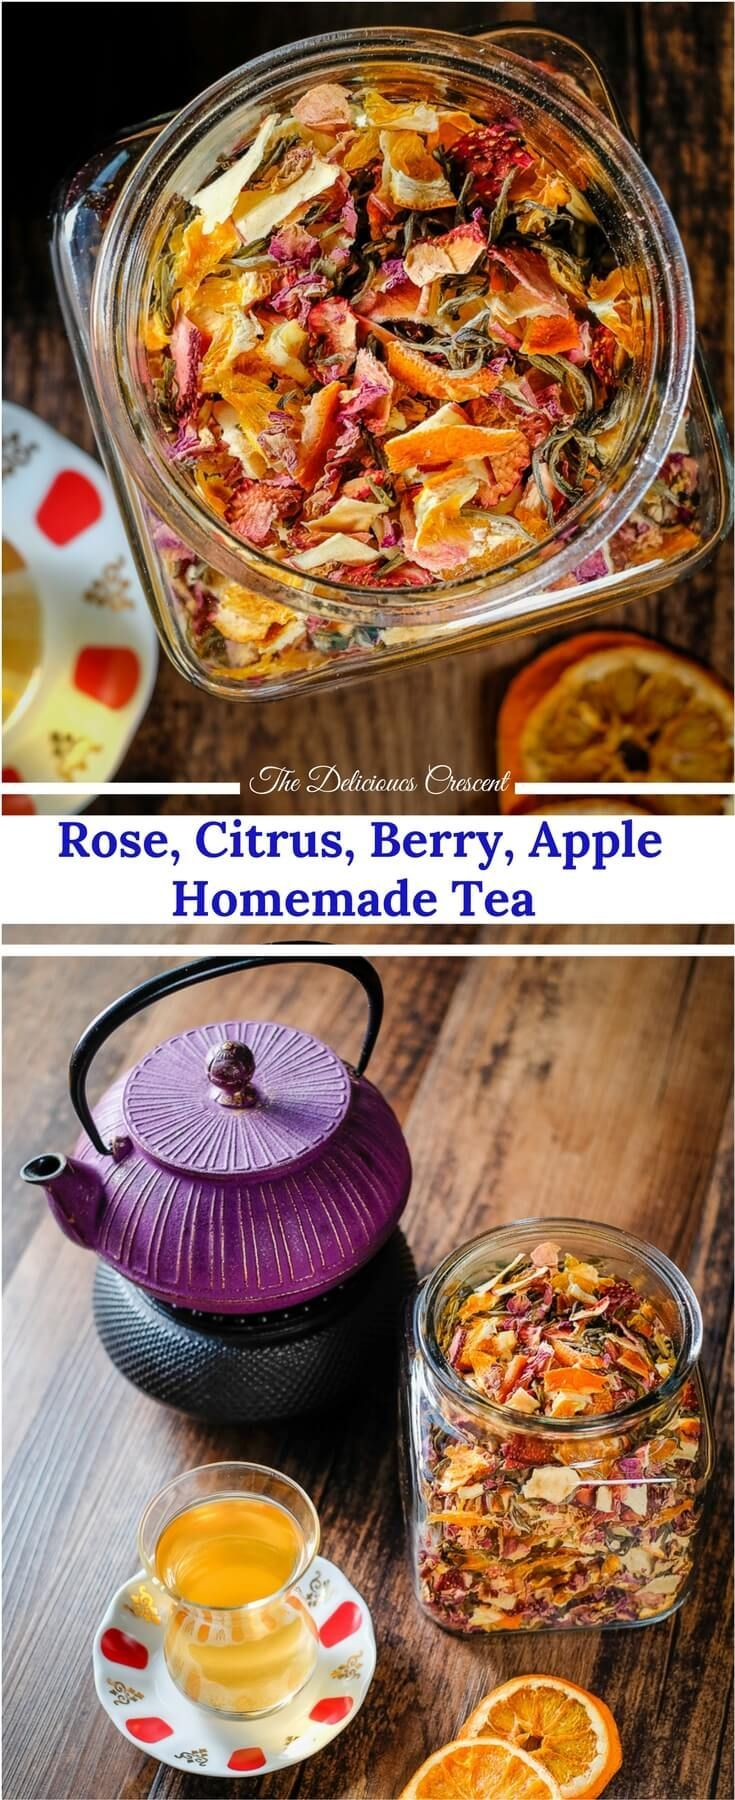 Rose and Dried Fruit Homemade Tea #favoriterecipes